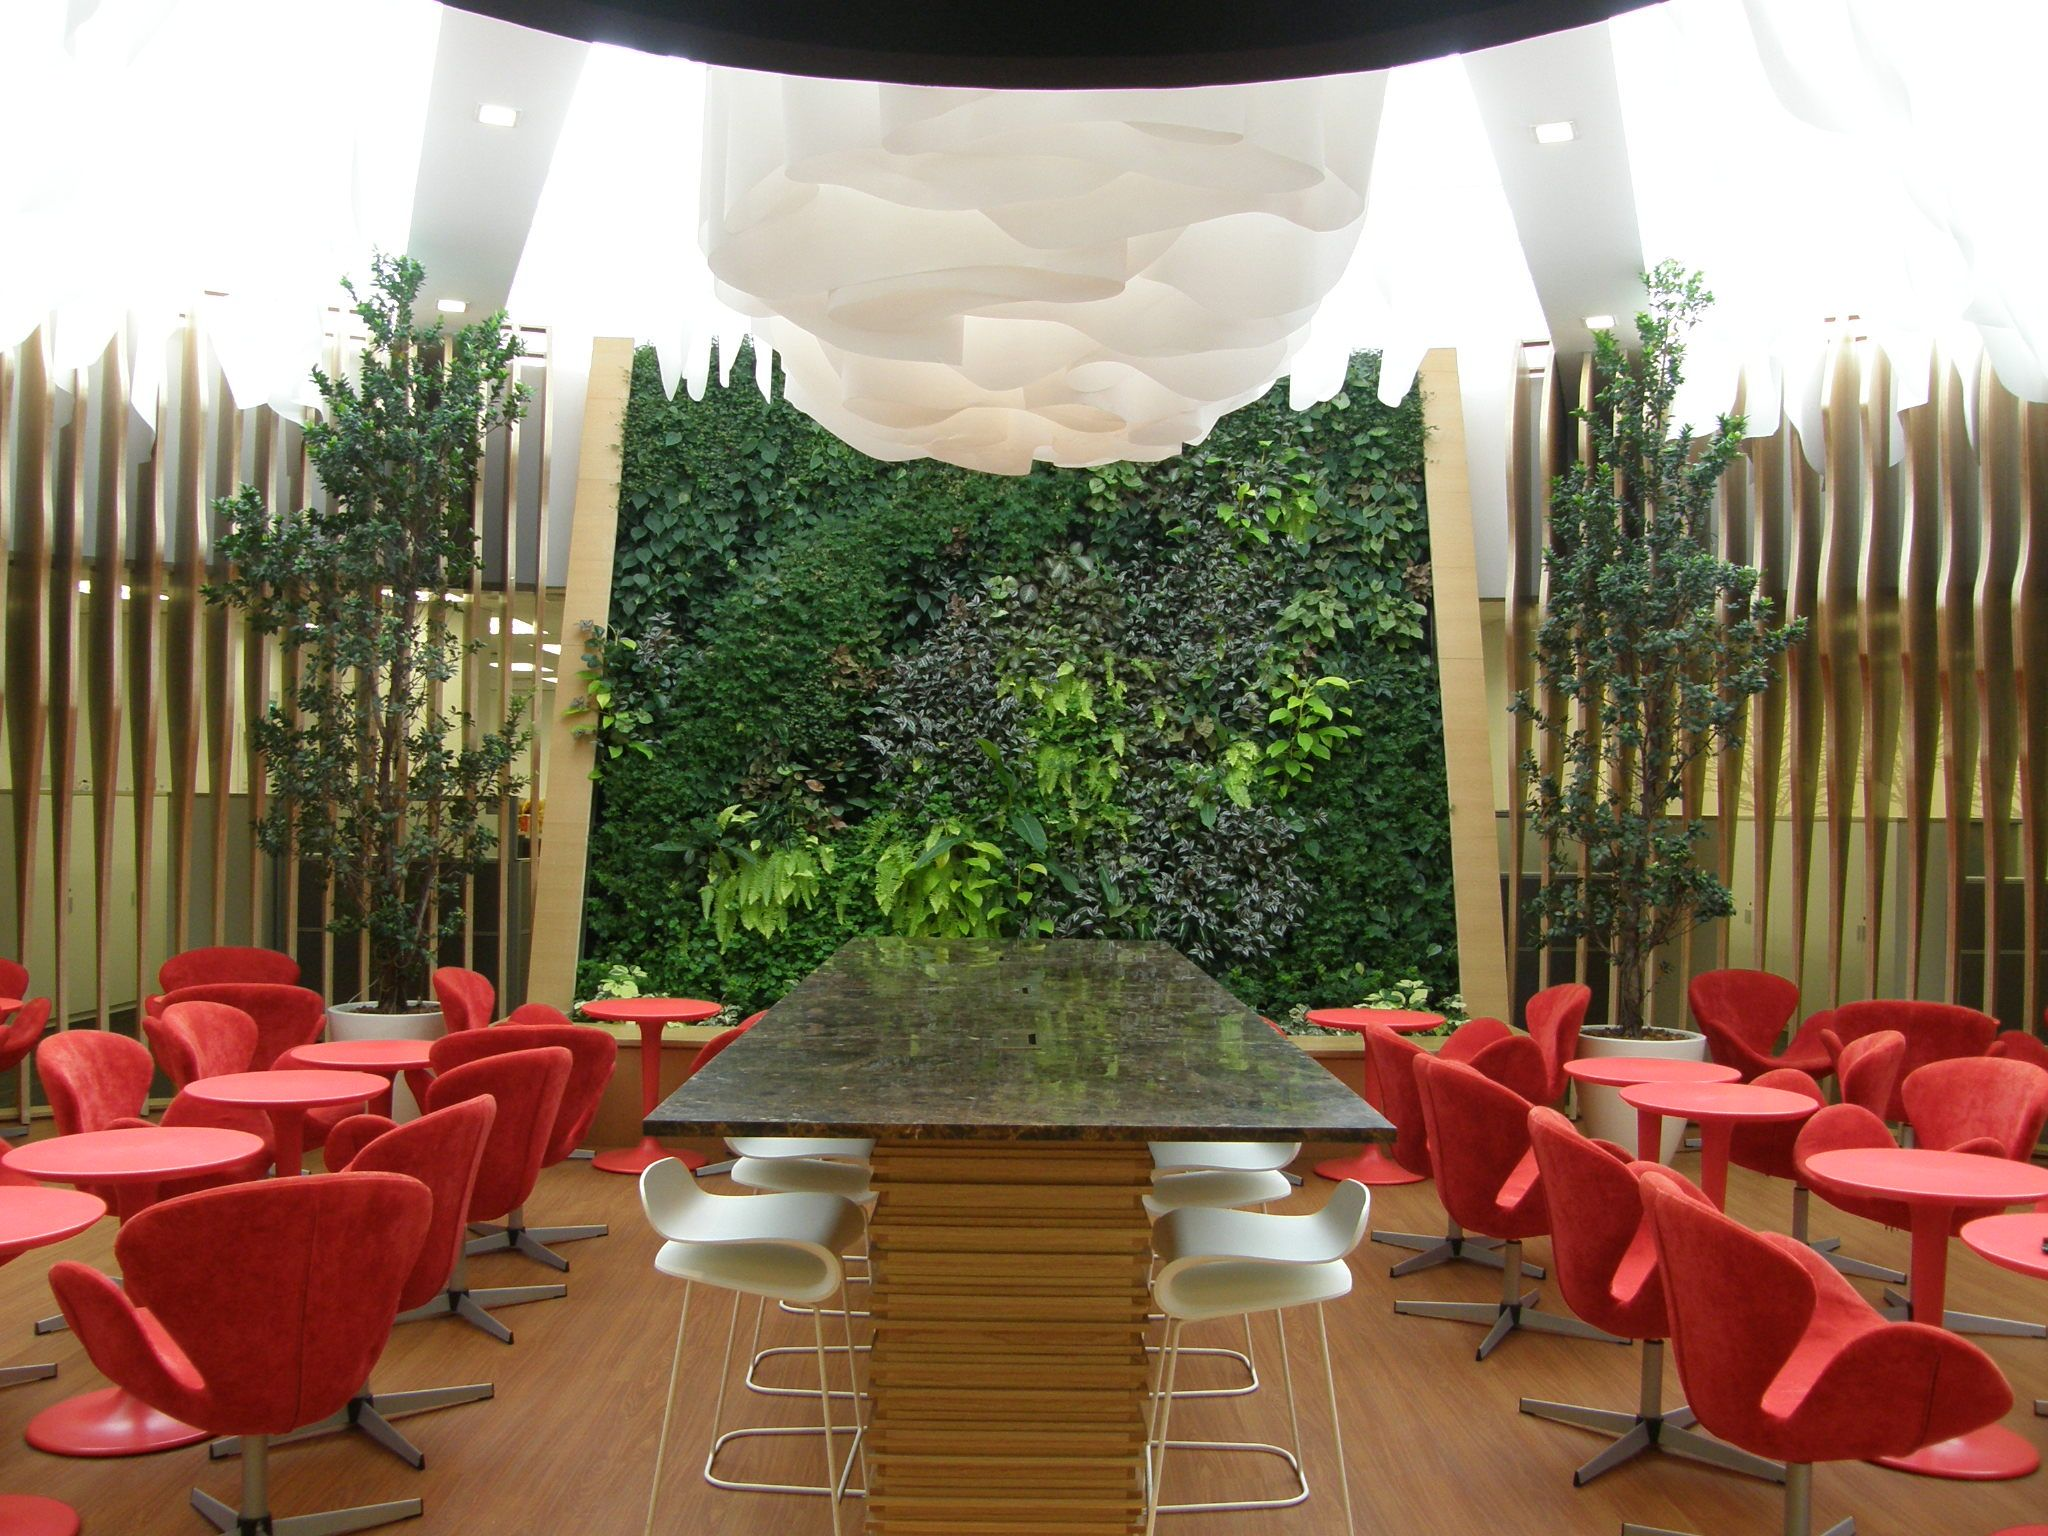 GVG Greenwalls At Estee Lauder Corporate Office, Singapore